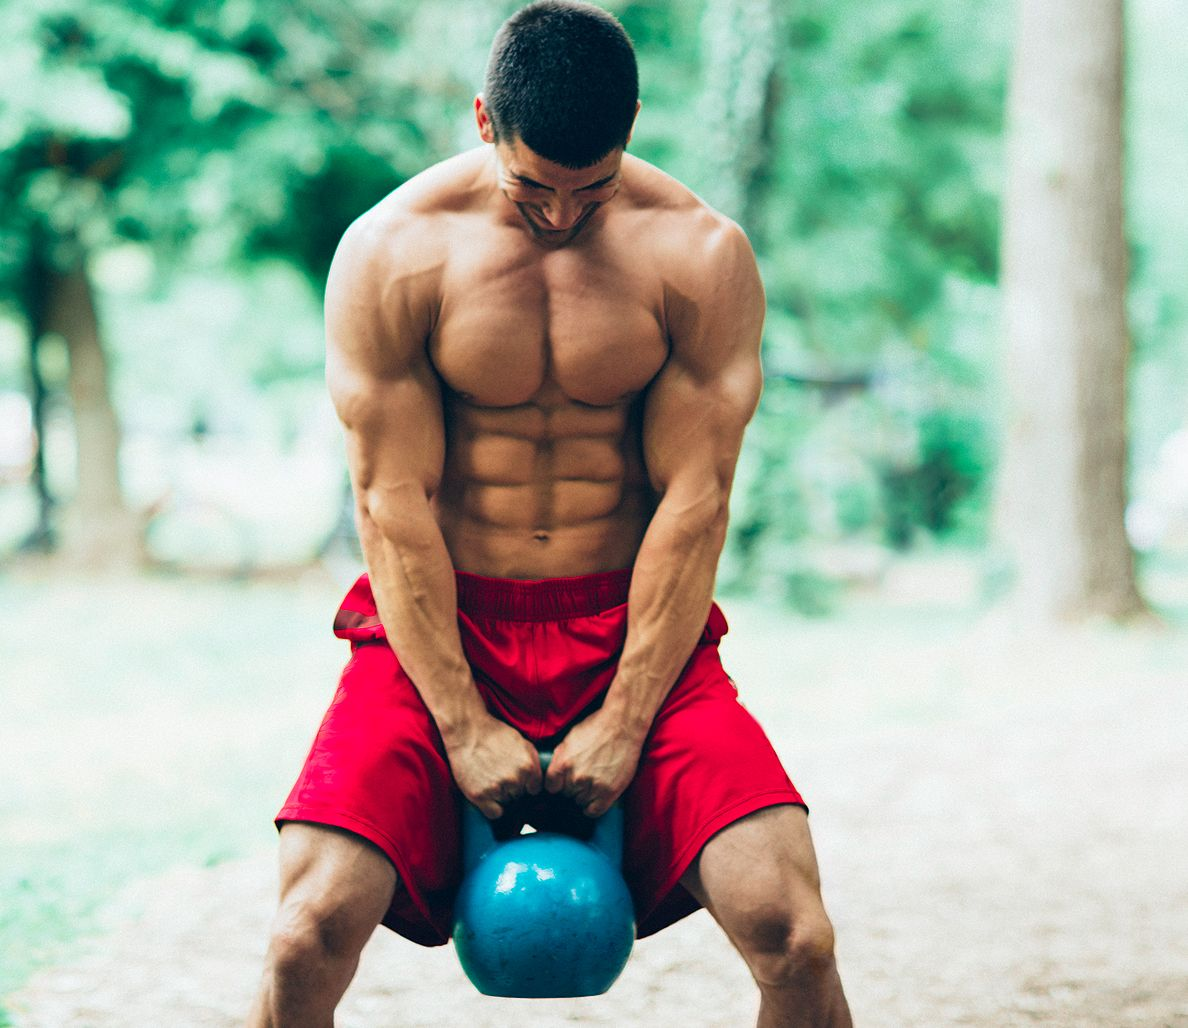 Kettlebell Workout For Men: 10 Kettlebell Workouts To Build Total Body Stamina